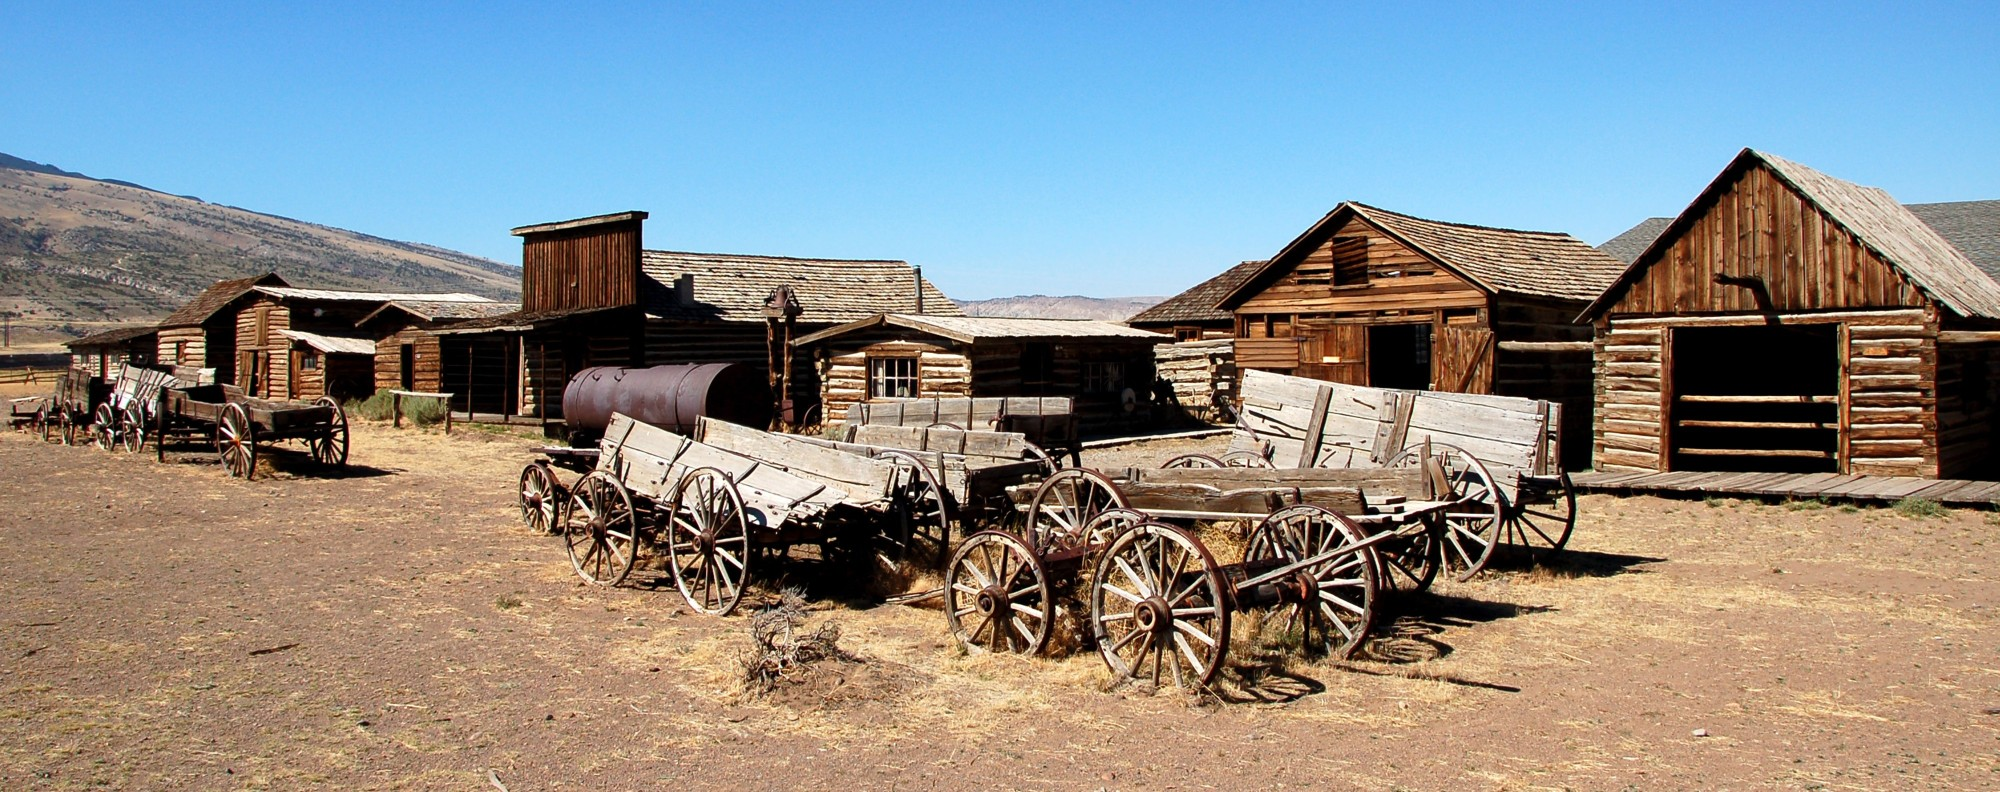 Wild West-style buildings at the Old Trail Town, in Cody, Wyoming. Picture: Alamy